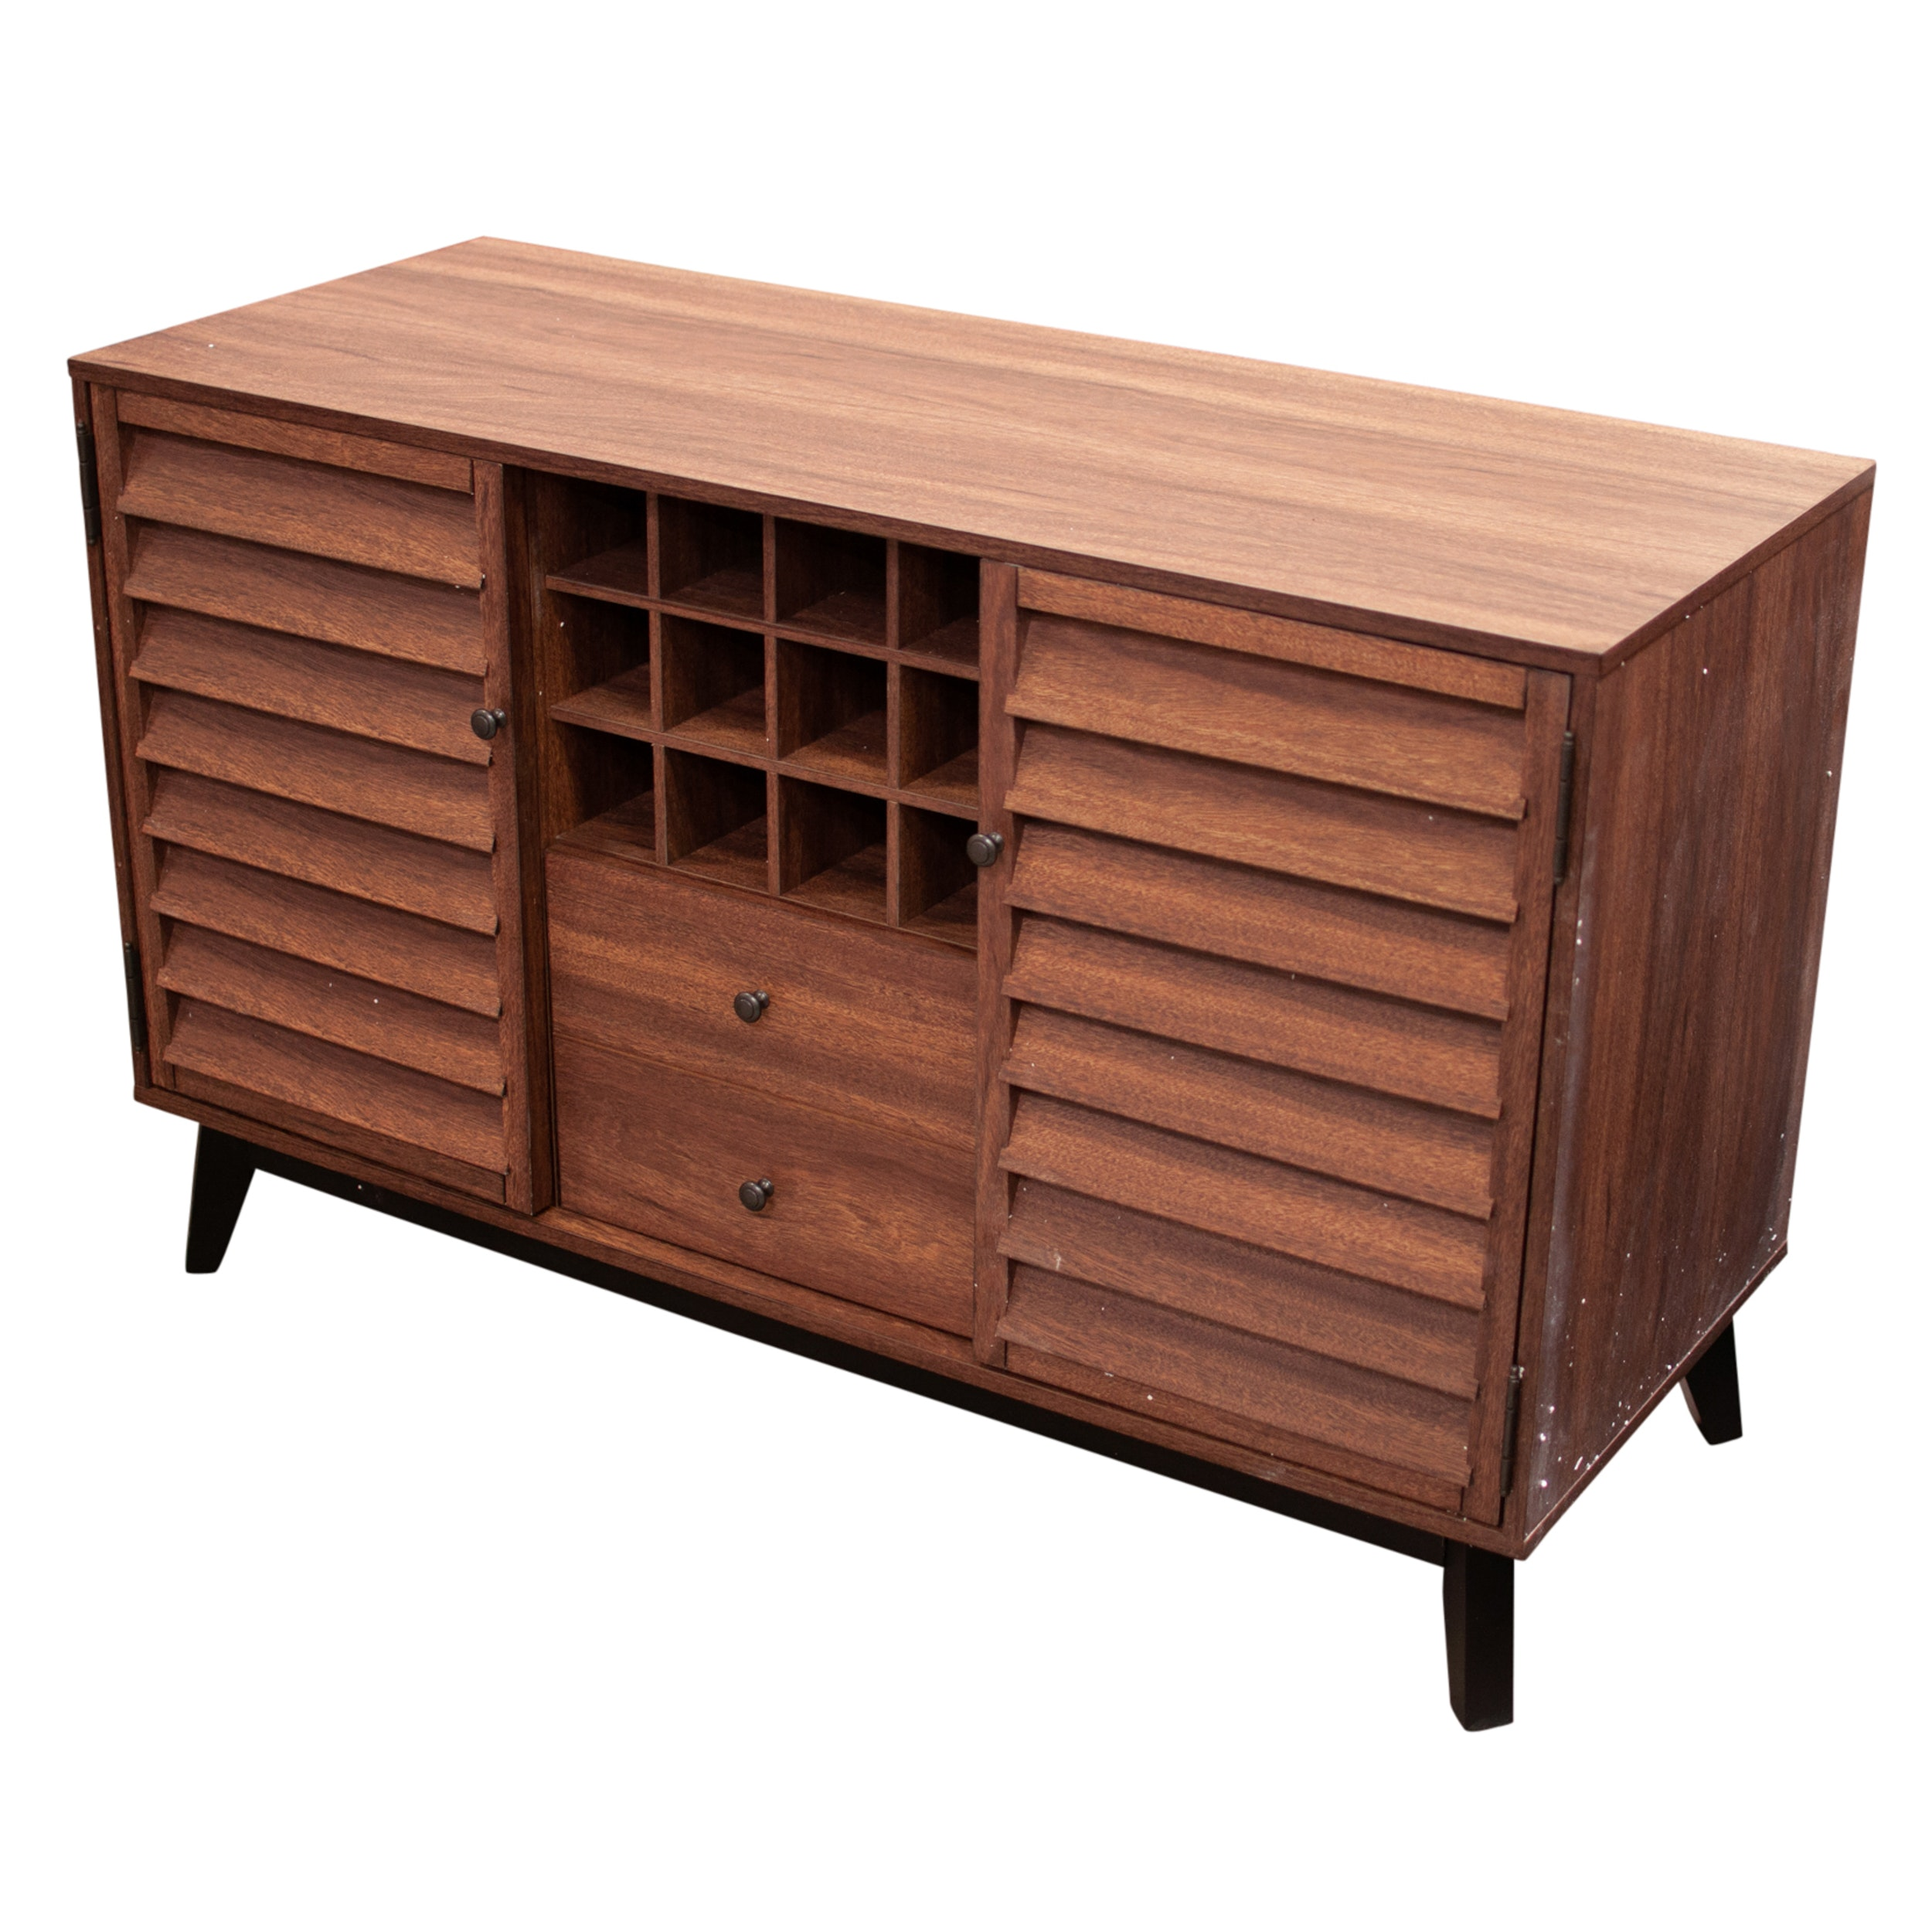 Apothecary Style Sideboard, Contemporary